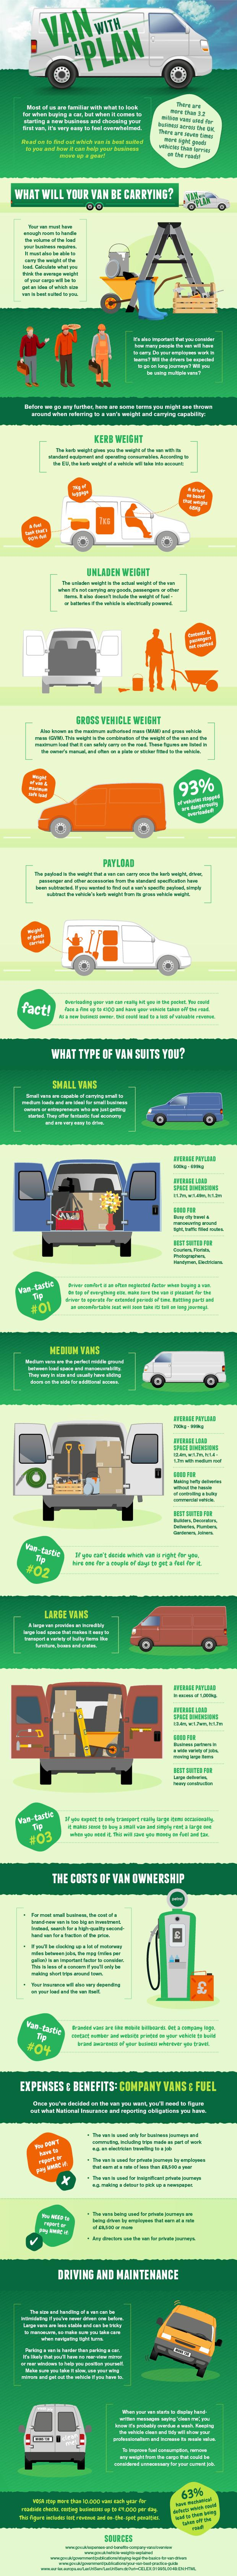 Van Monster - infographic - Van with a plan